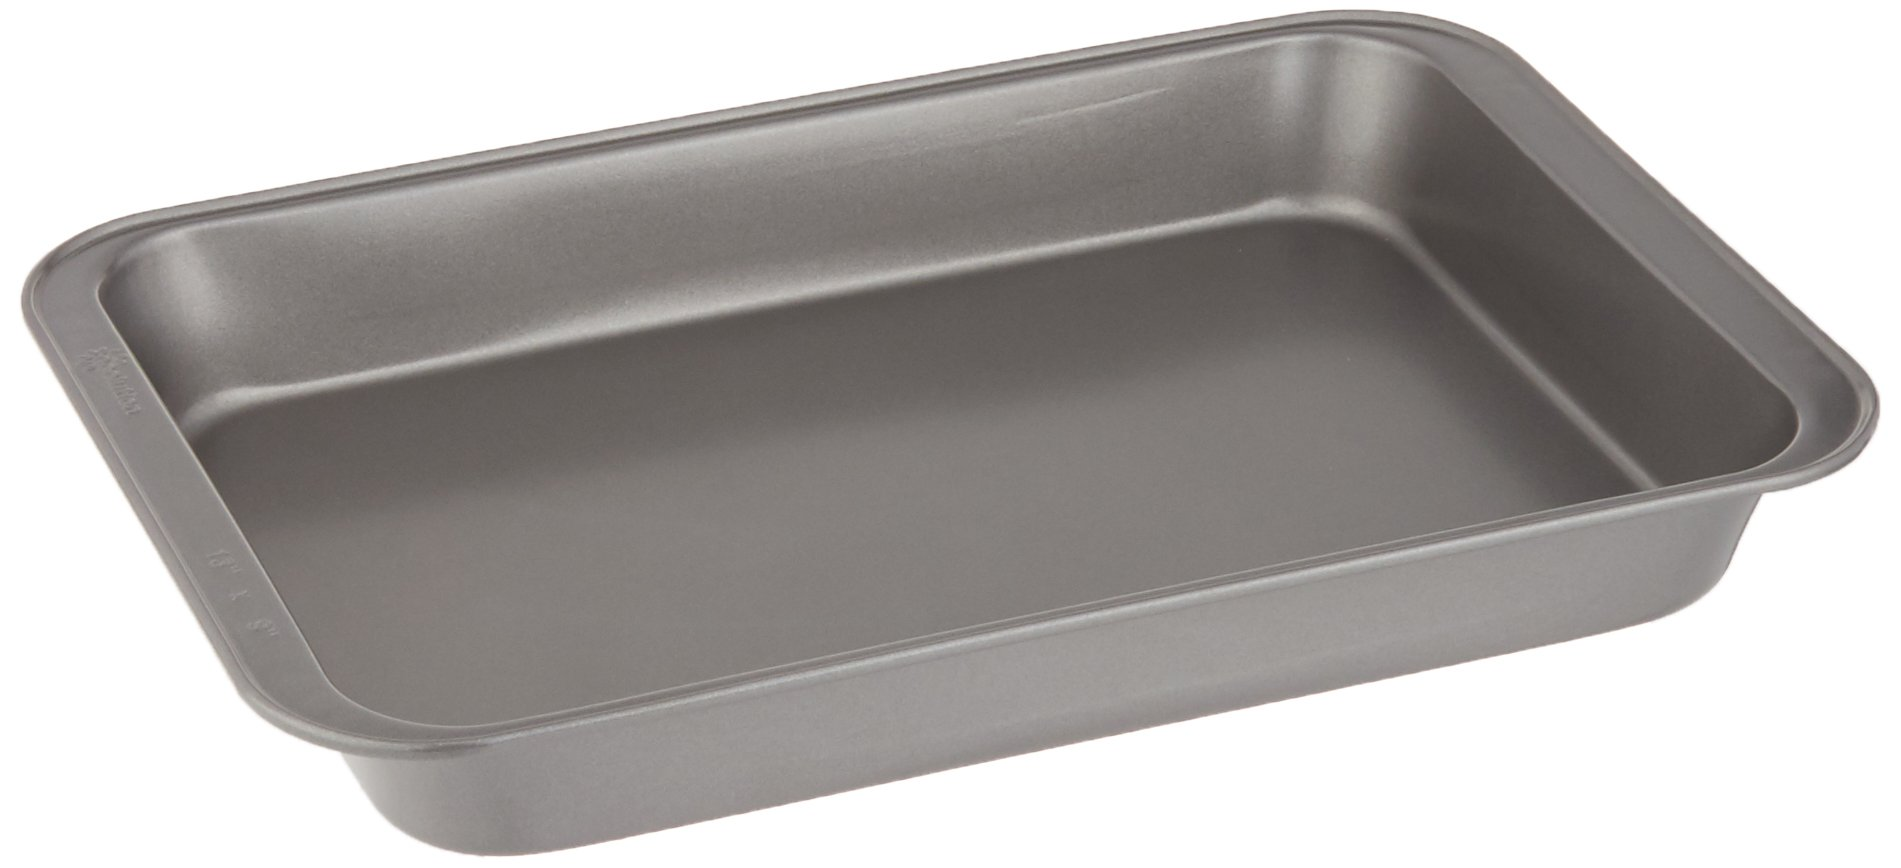 """Ecolution Bakeins Cake Pan – PFOA, BPA, and PTFE Free Non-Stick Coating – Heavy Duty Carbon Steel – Dishwasher Safe – Gray – 13"""" x 9"""" x 1.875"""""""